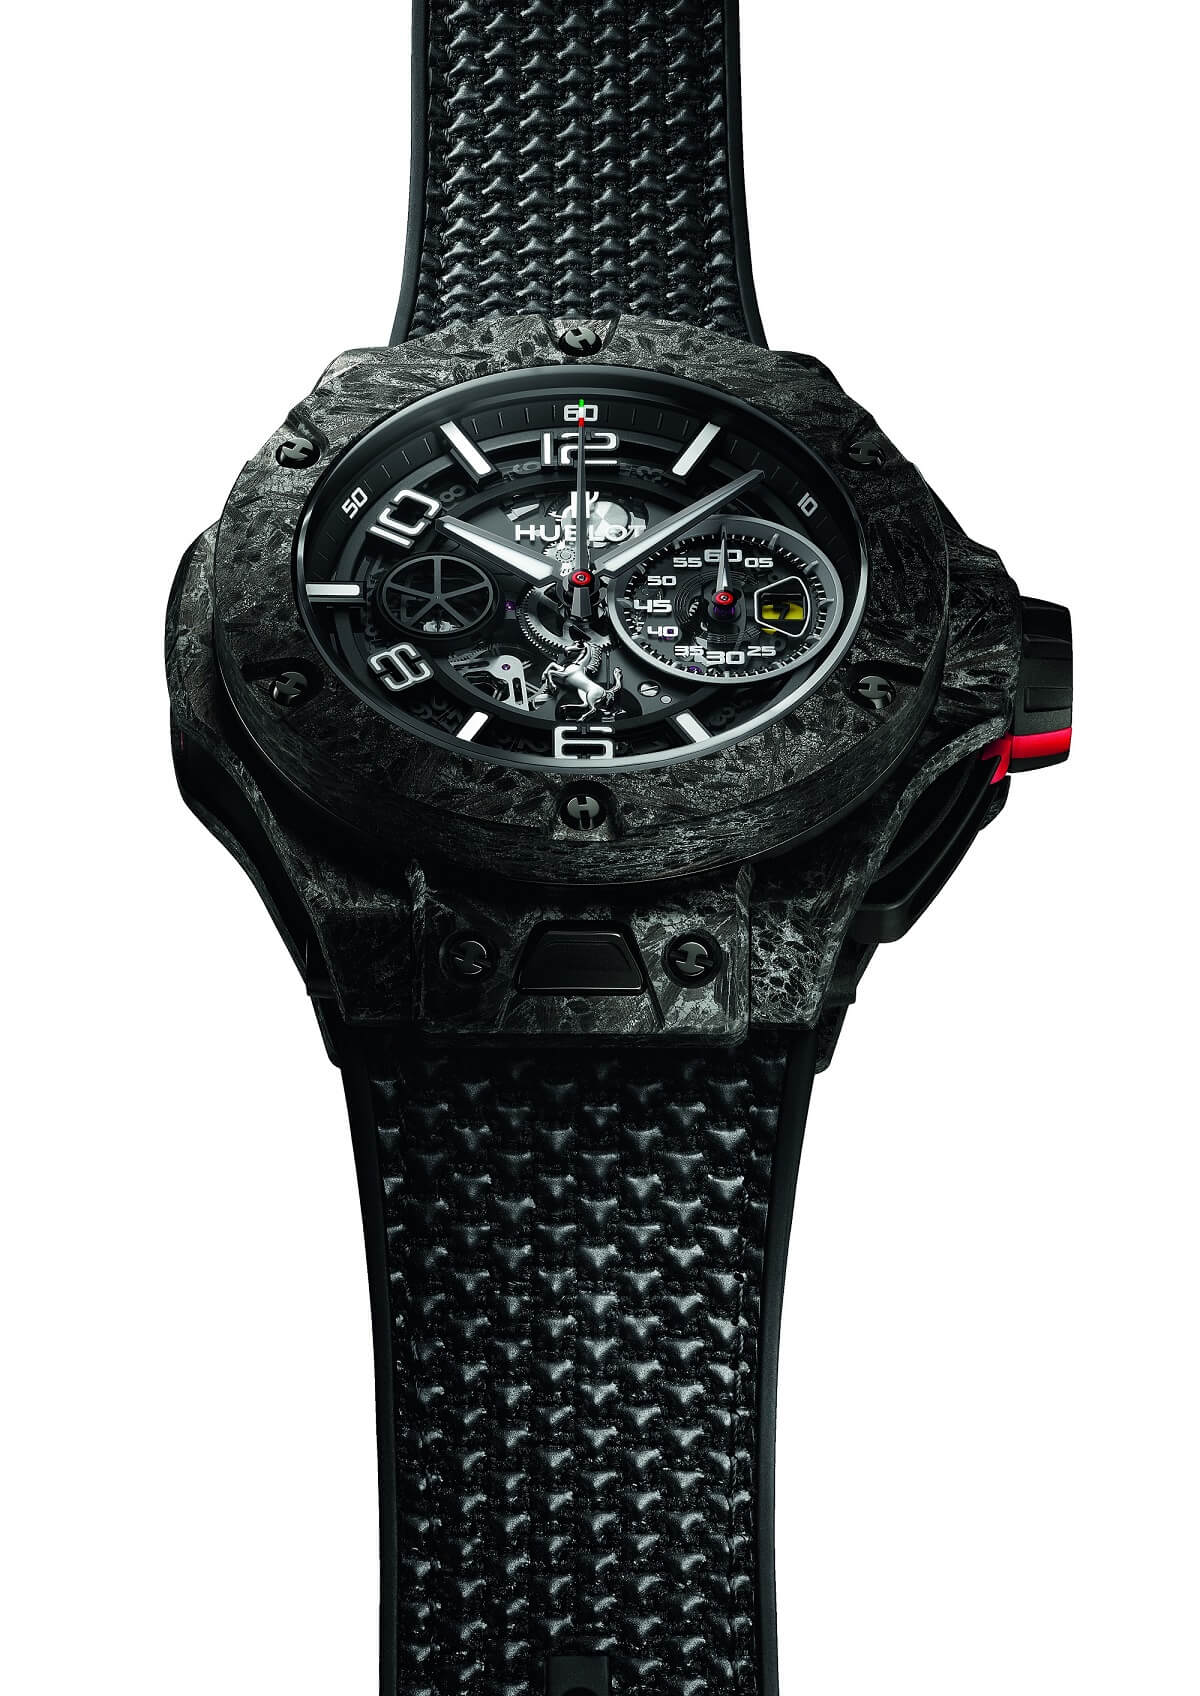 HUBLOT-BIG-BANG-Ferrari-1000-GP-6.jpg